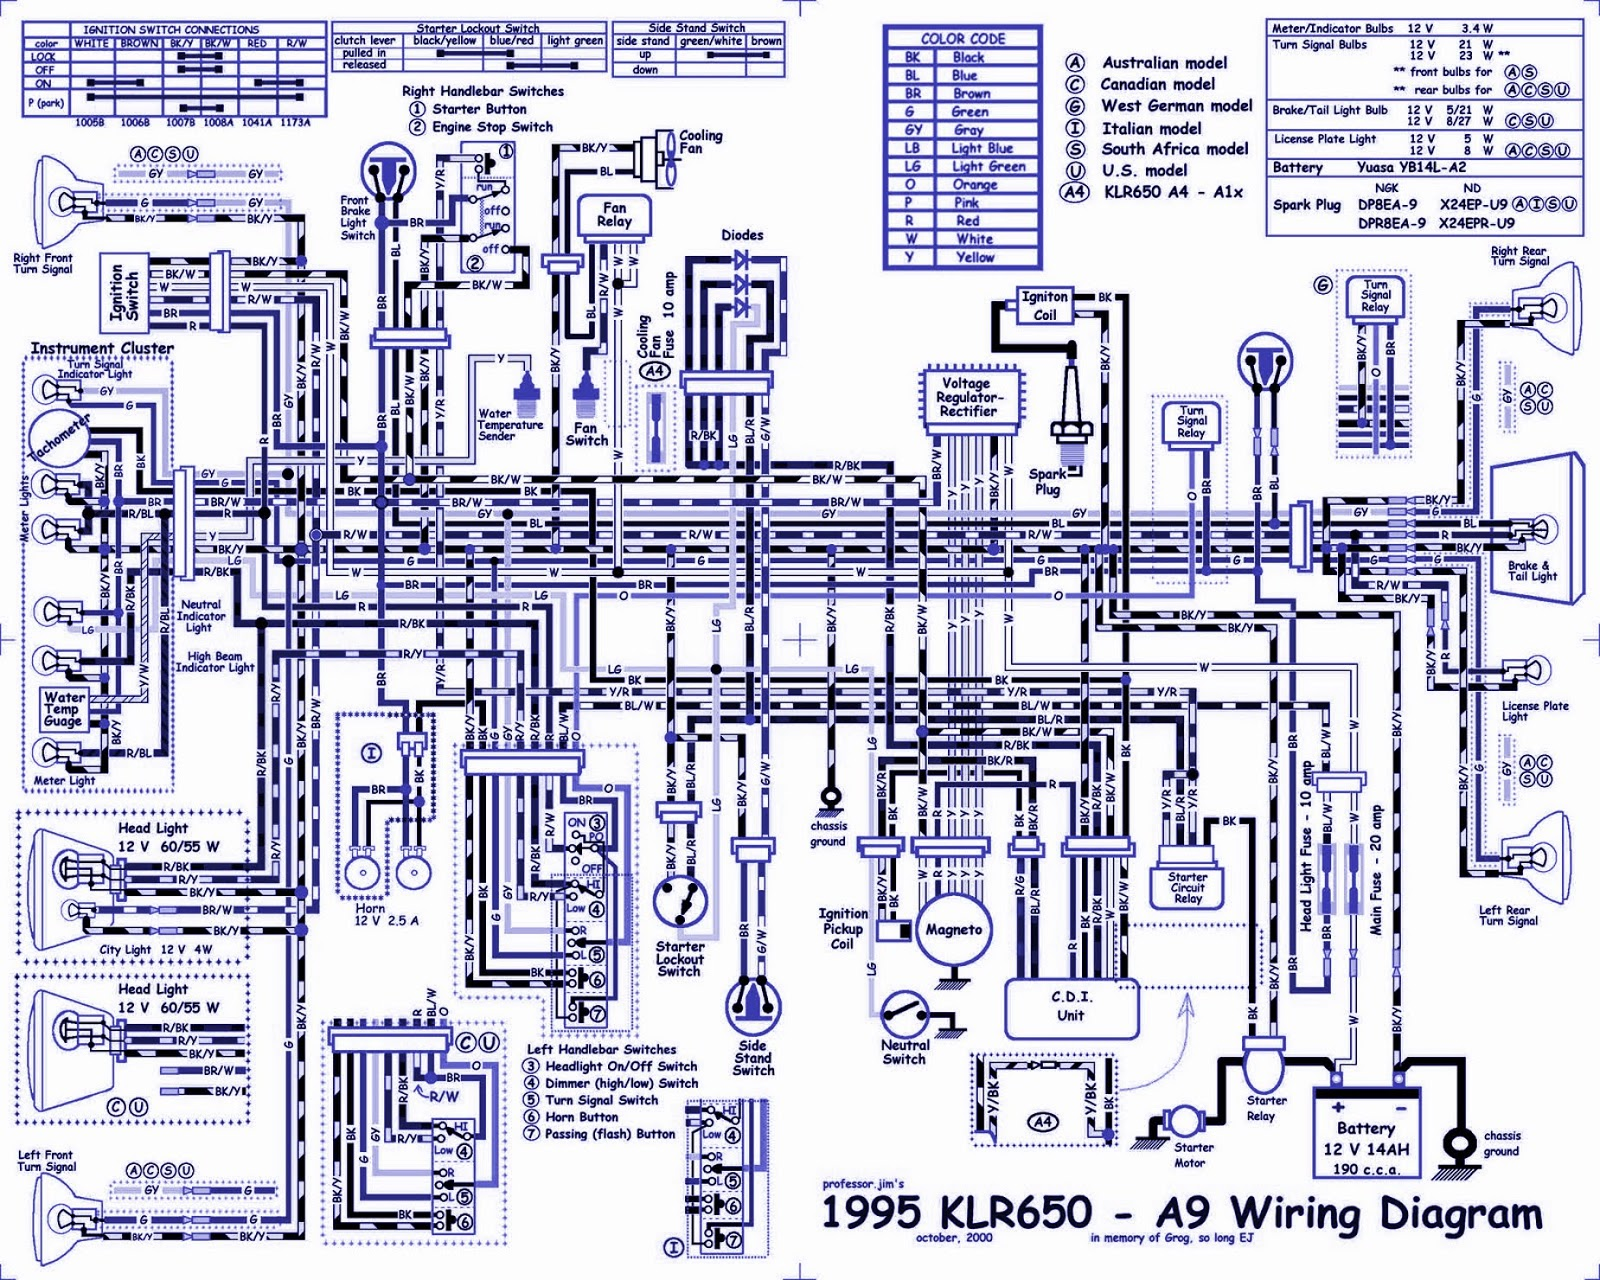 Chevrolet Monte Carlo 1974 Electrical Wiring Diagram kawasaki 360 wiring diagram on kawasaki download wirning diagrams  at webbmarketing.co